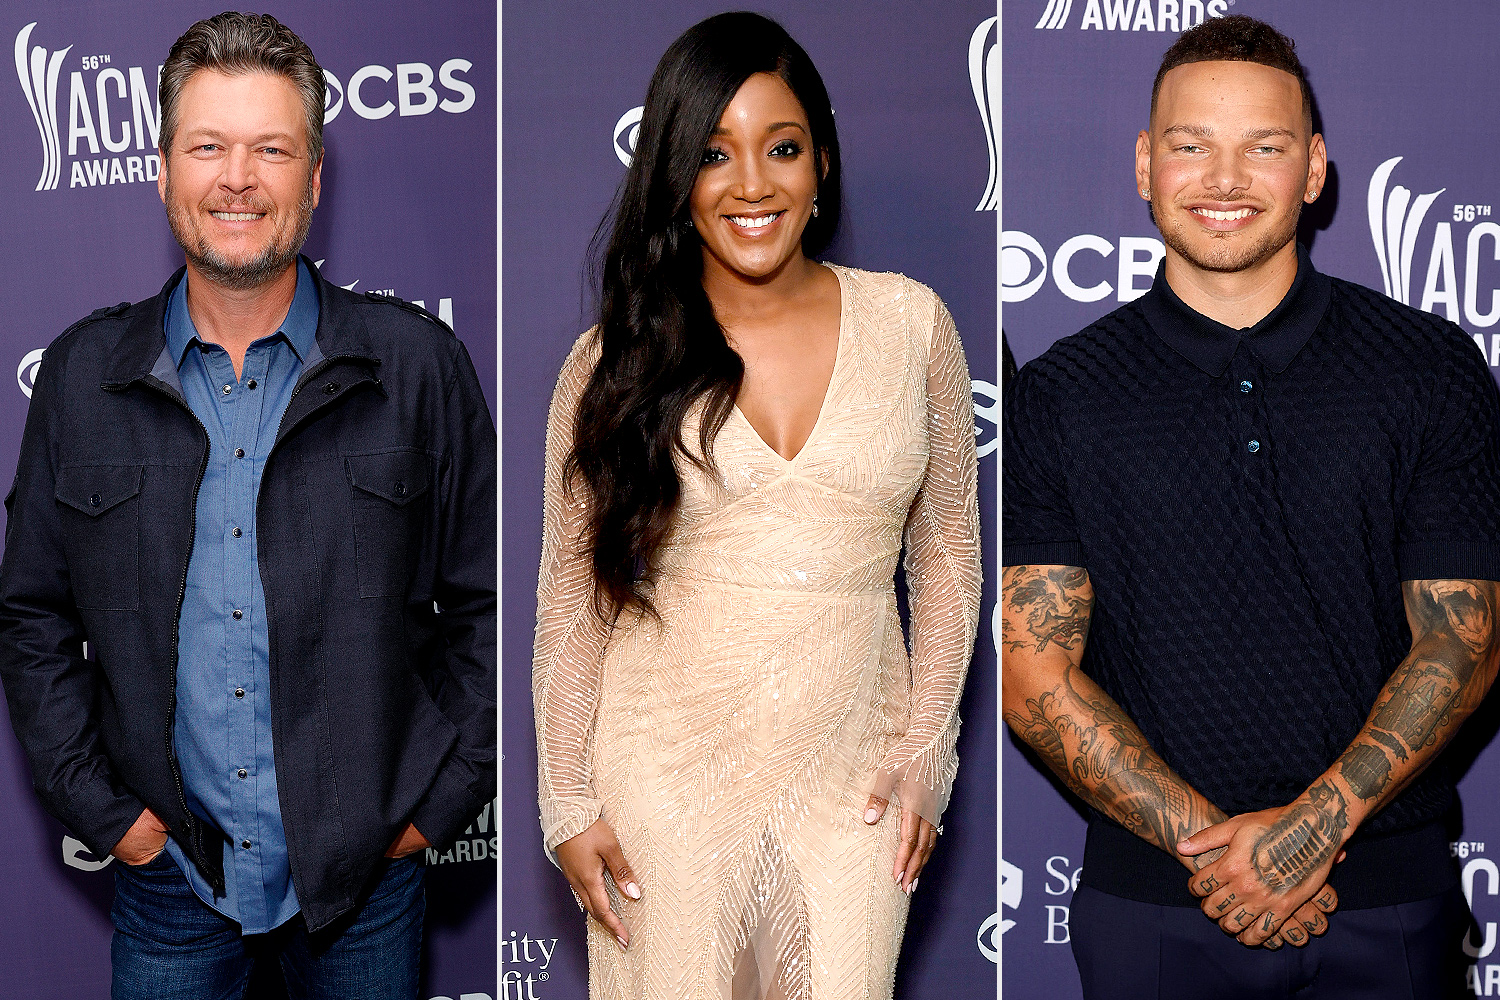 mickey guyton, blake shelton, kane brown